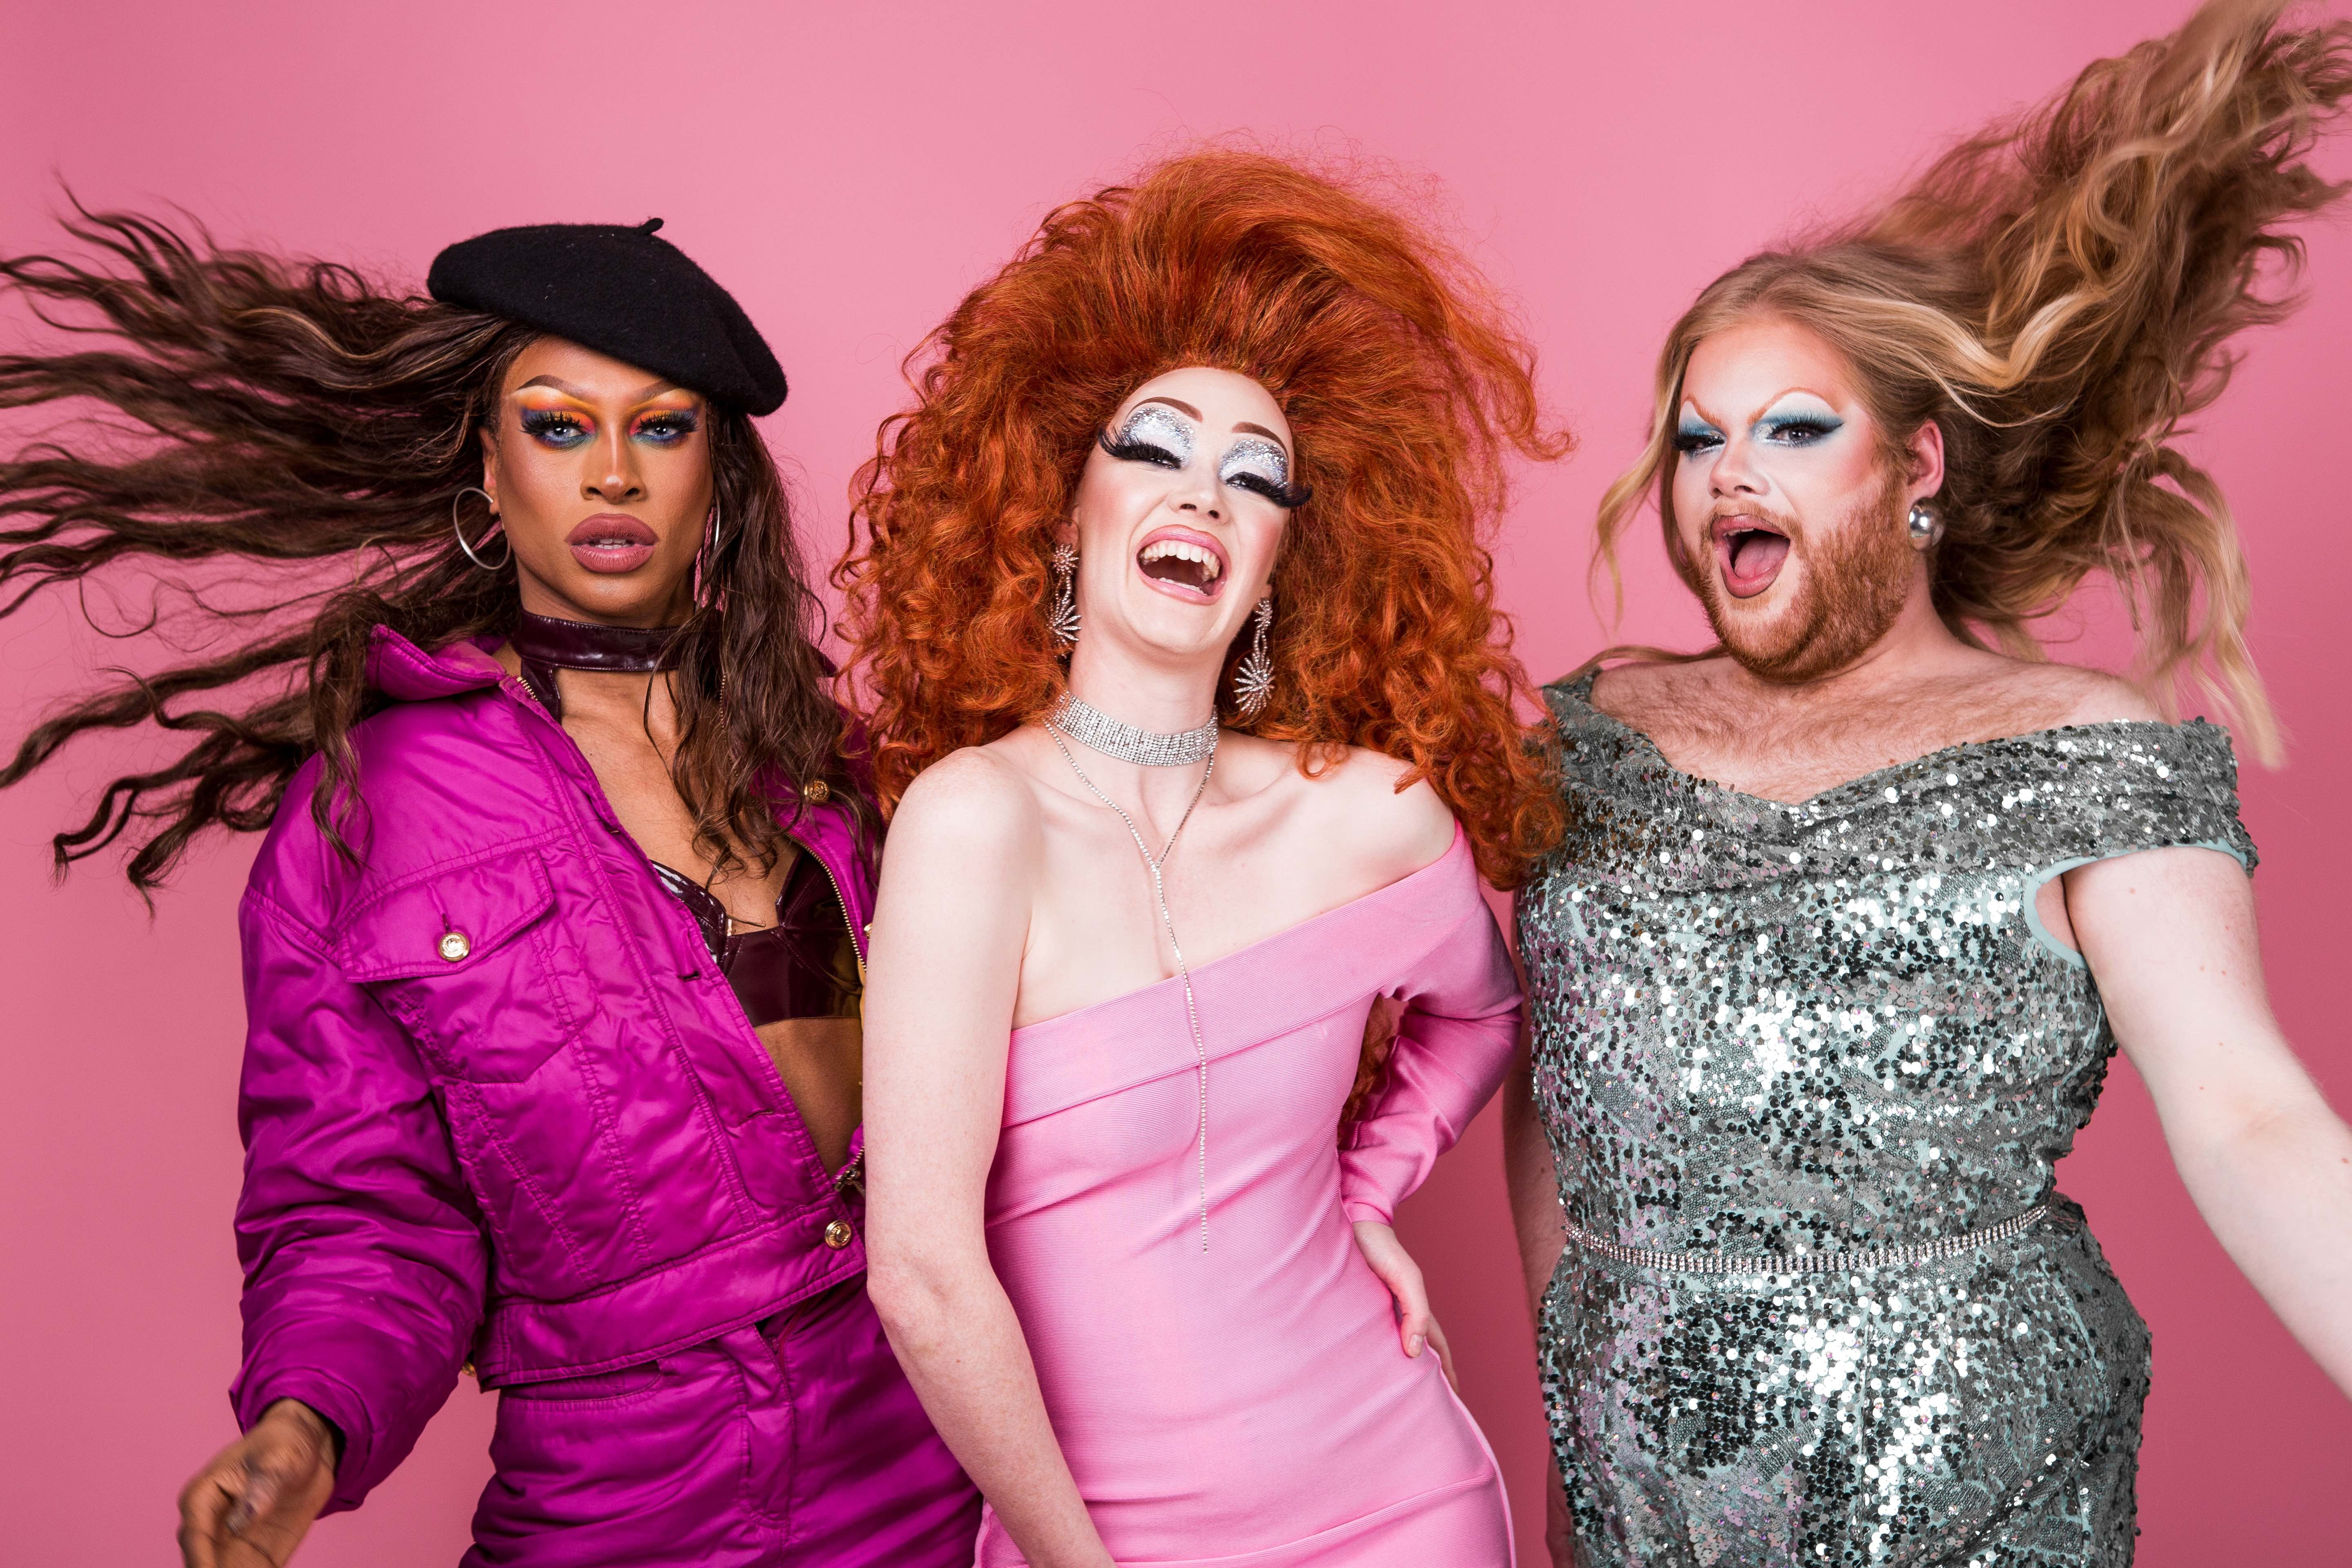 Kiki with Drag Queens @ Concrete